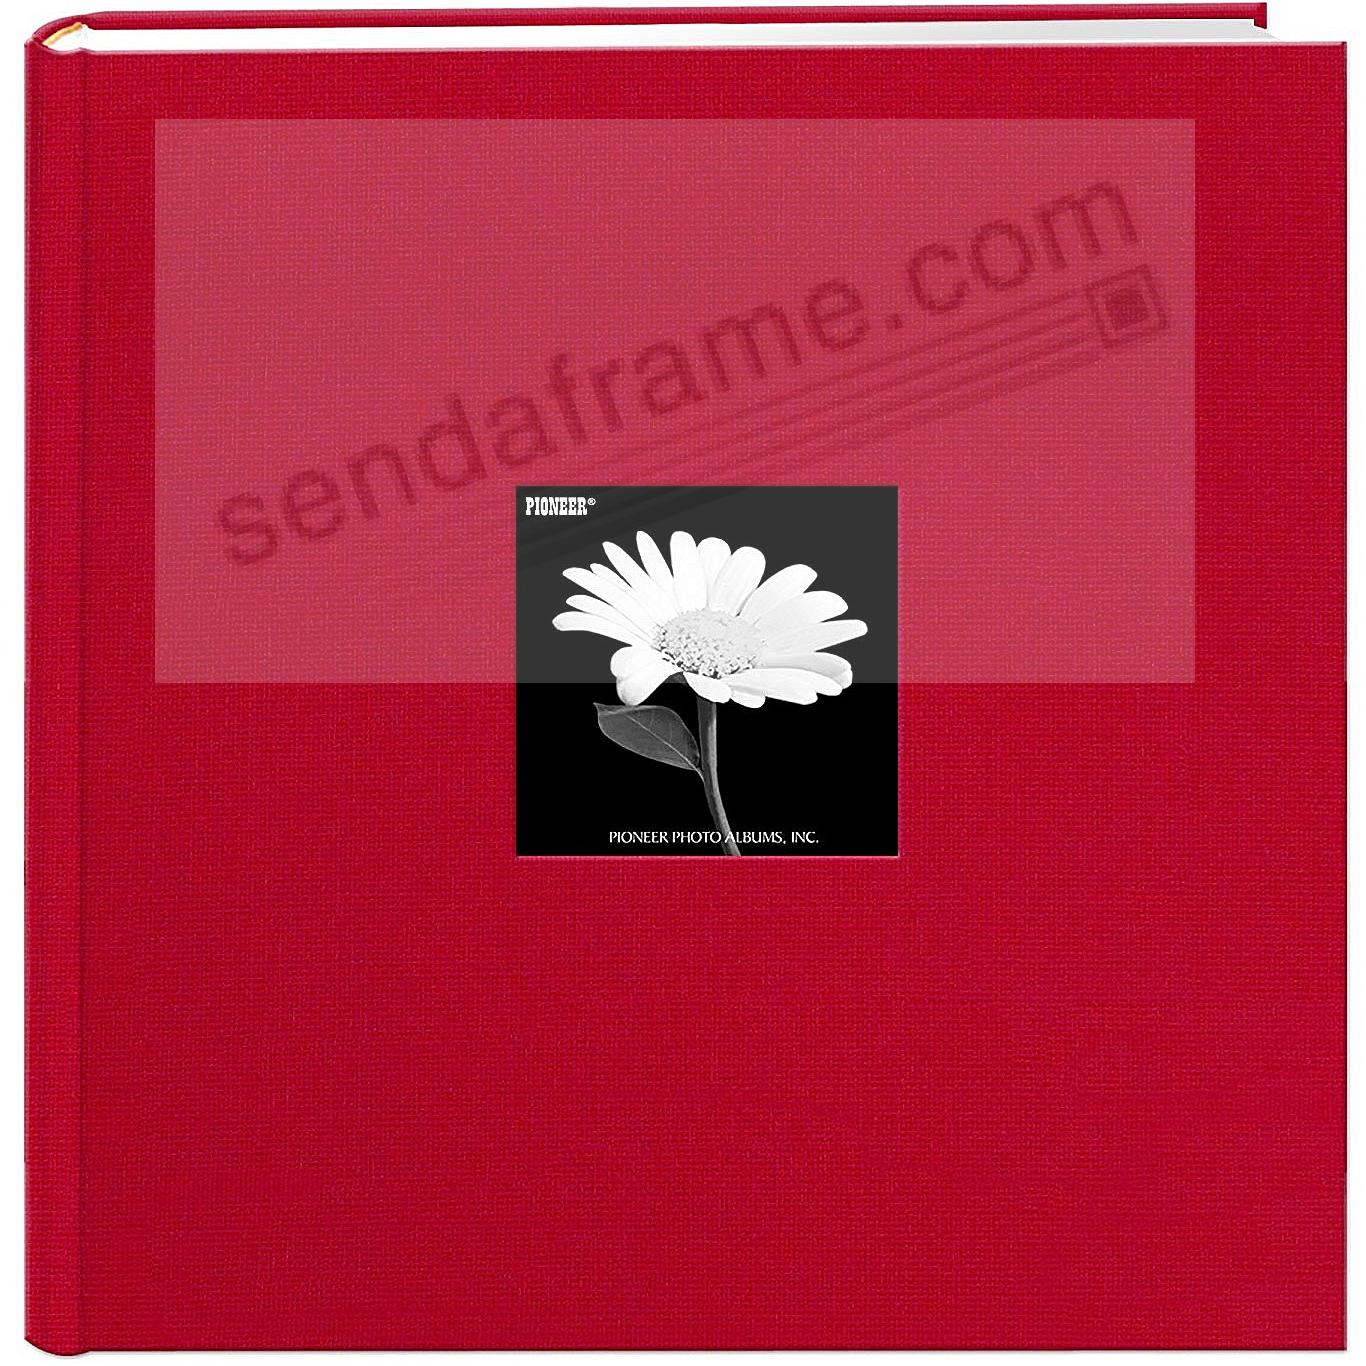 Red Cloth Frame Cover Album shows 10-at-a-time 500 pocket by Pioneer